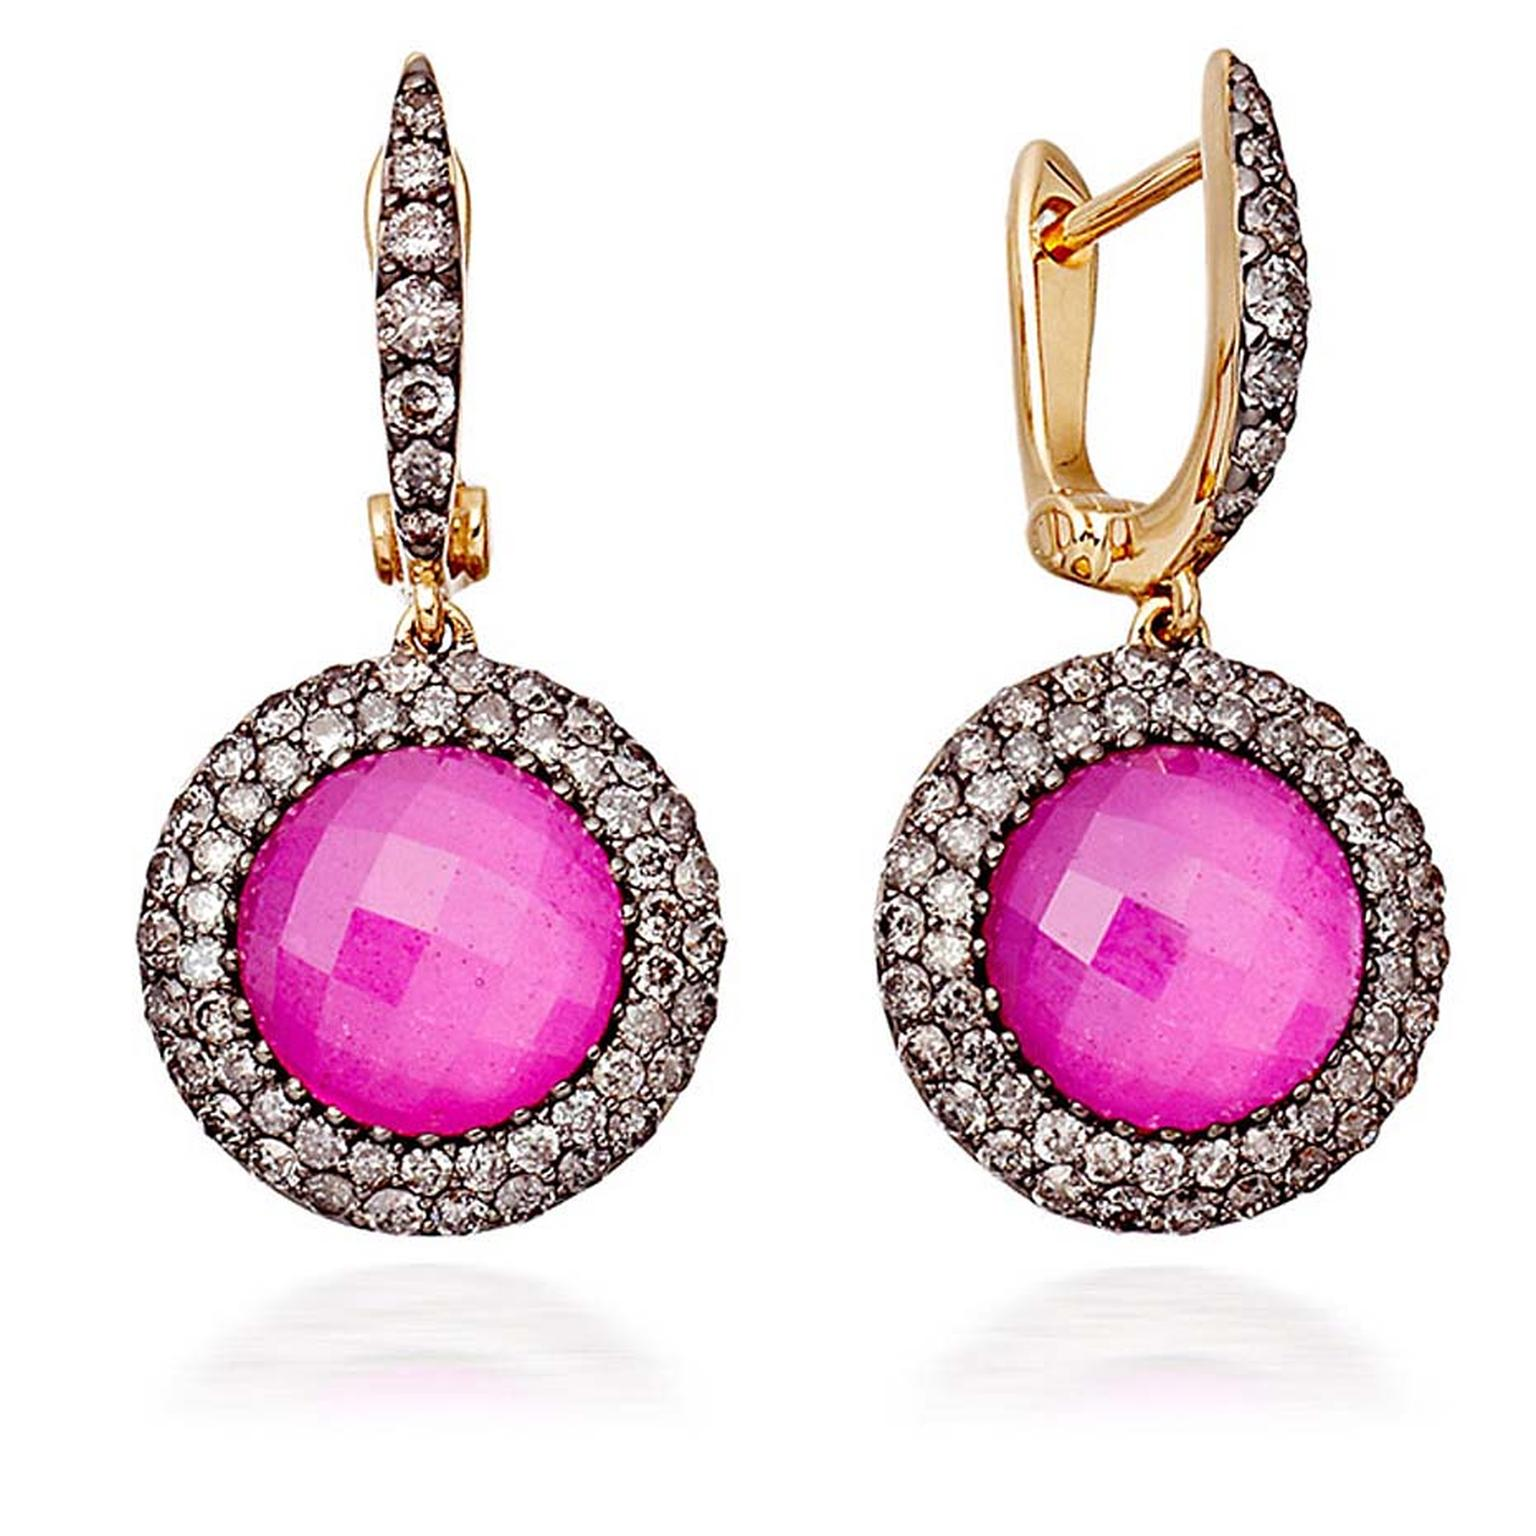 Astley Clarke Mini Connie ruby earrings in black rhodium-plated yellow gold with rubies and pavé grey diamonds. £ 3,950.